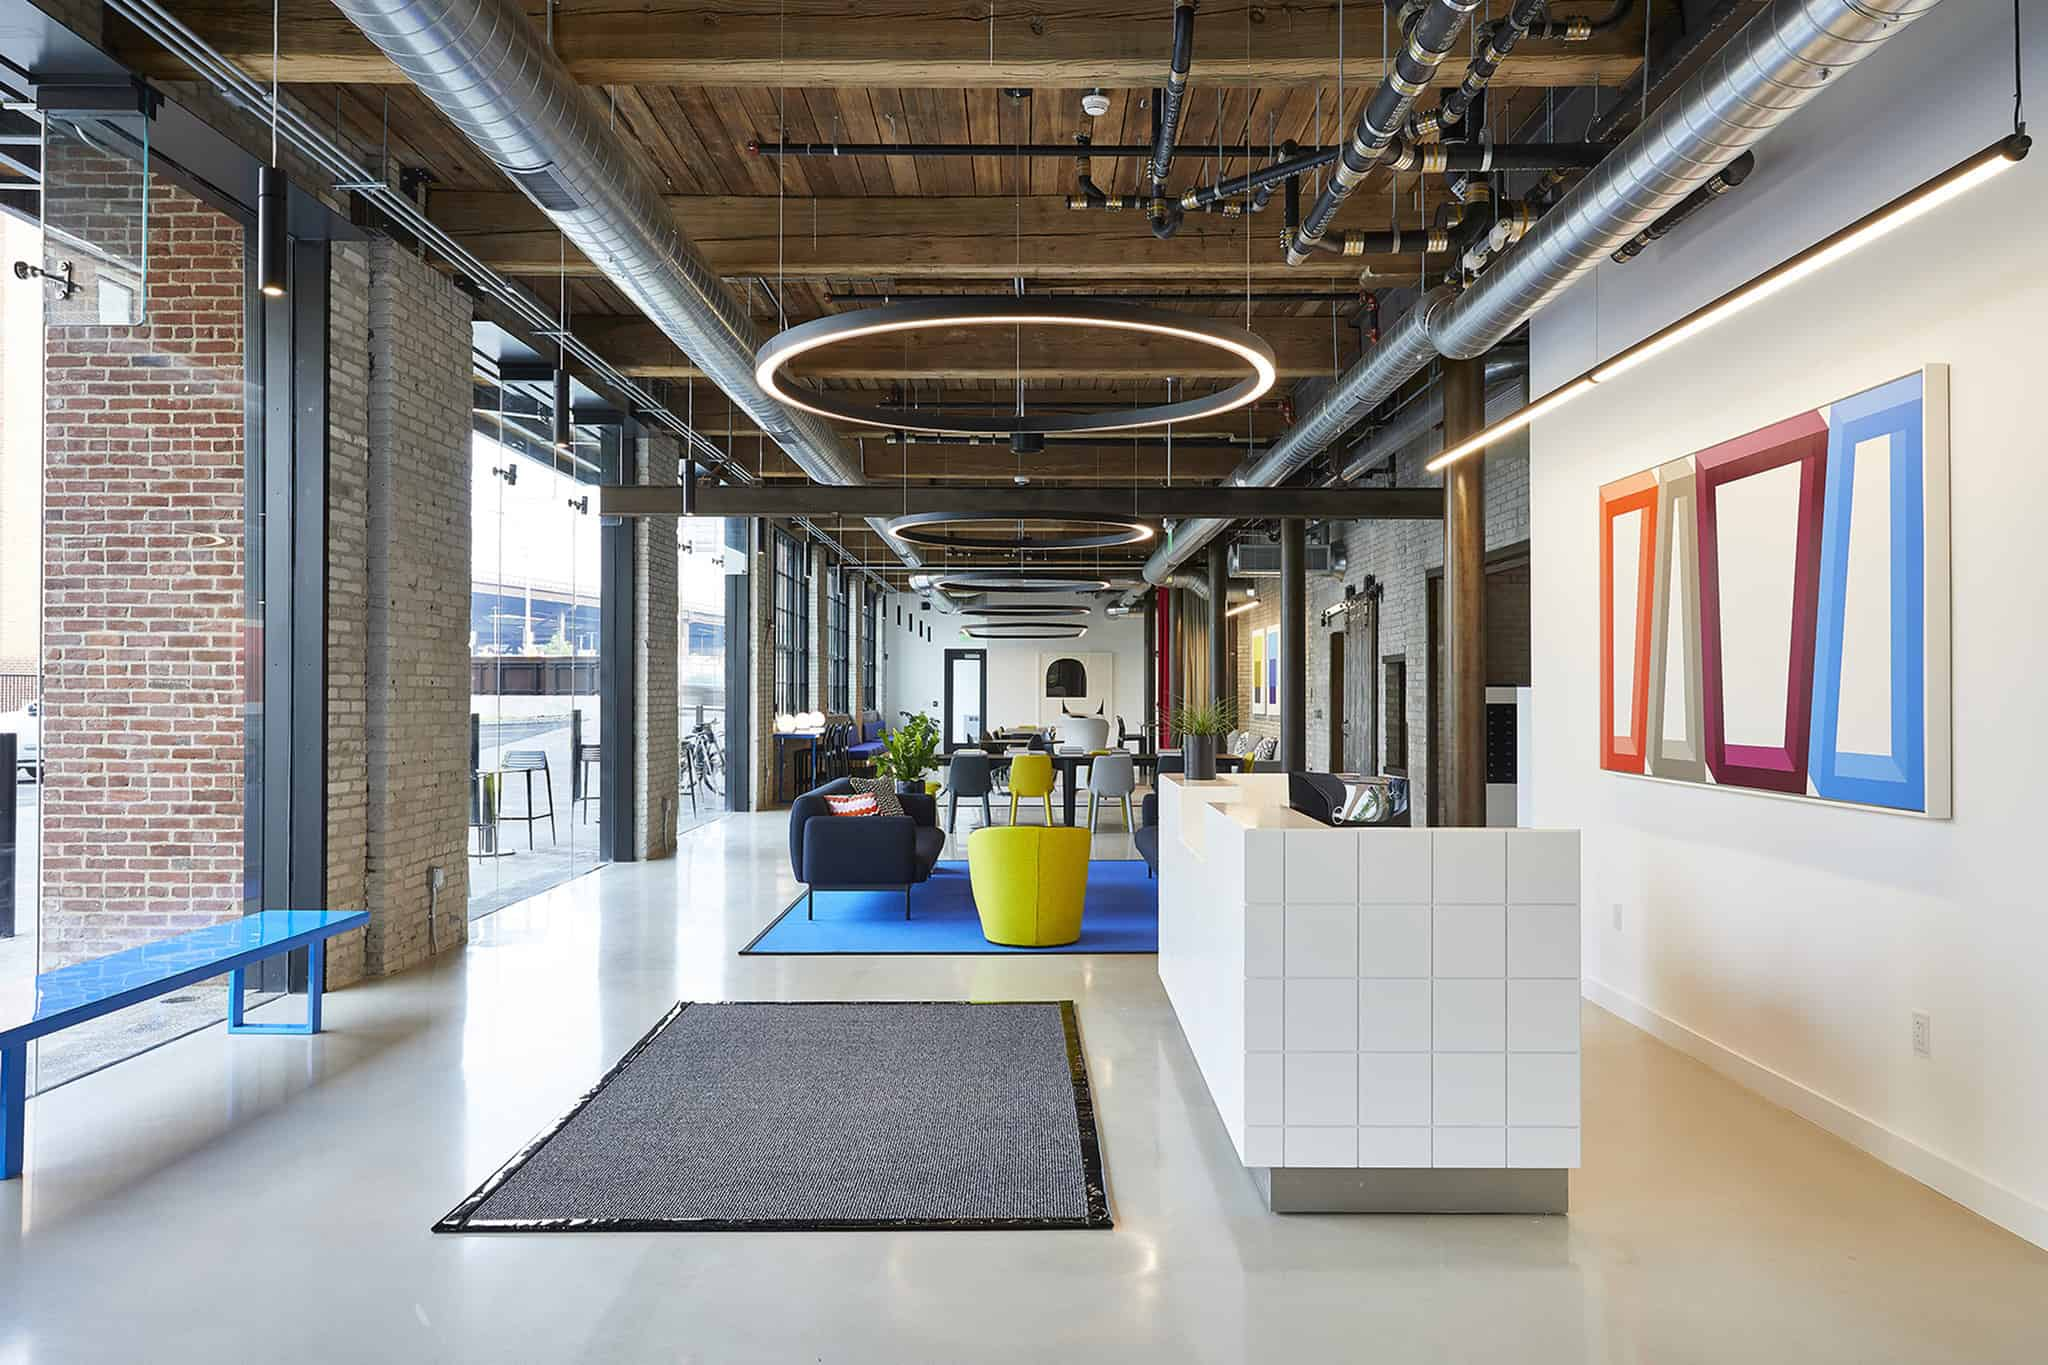 The Graphic Lofts